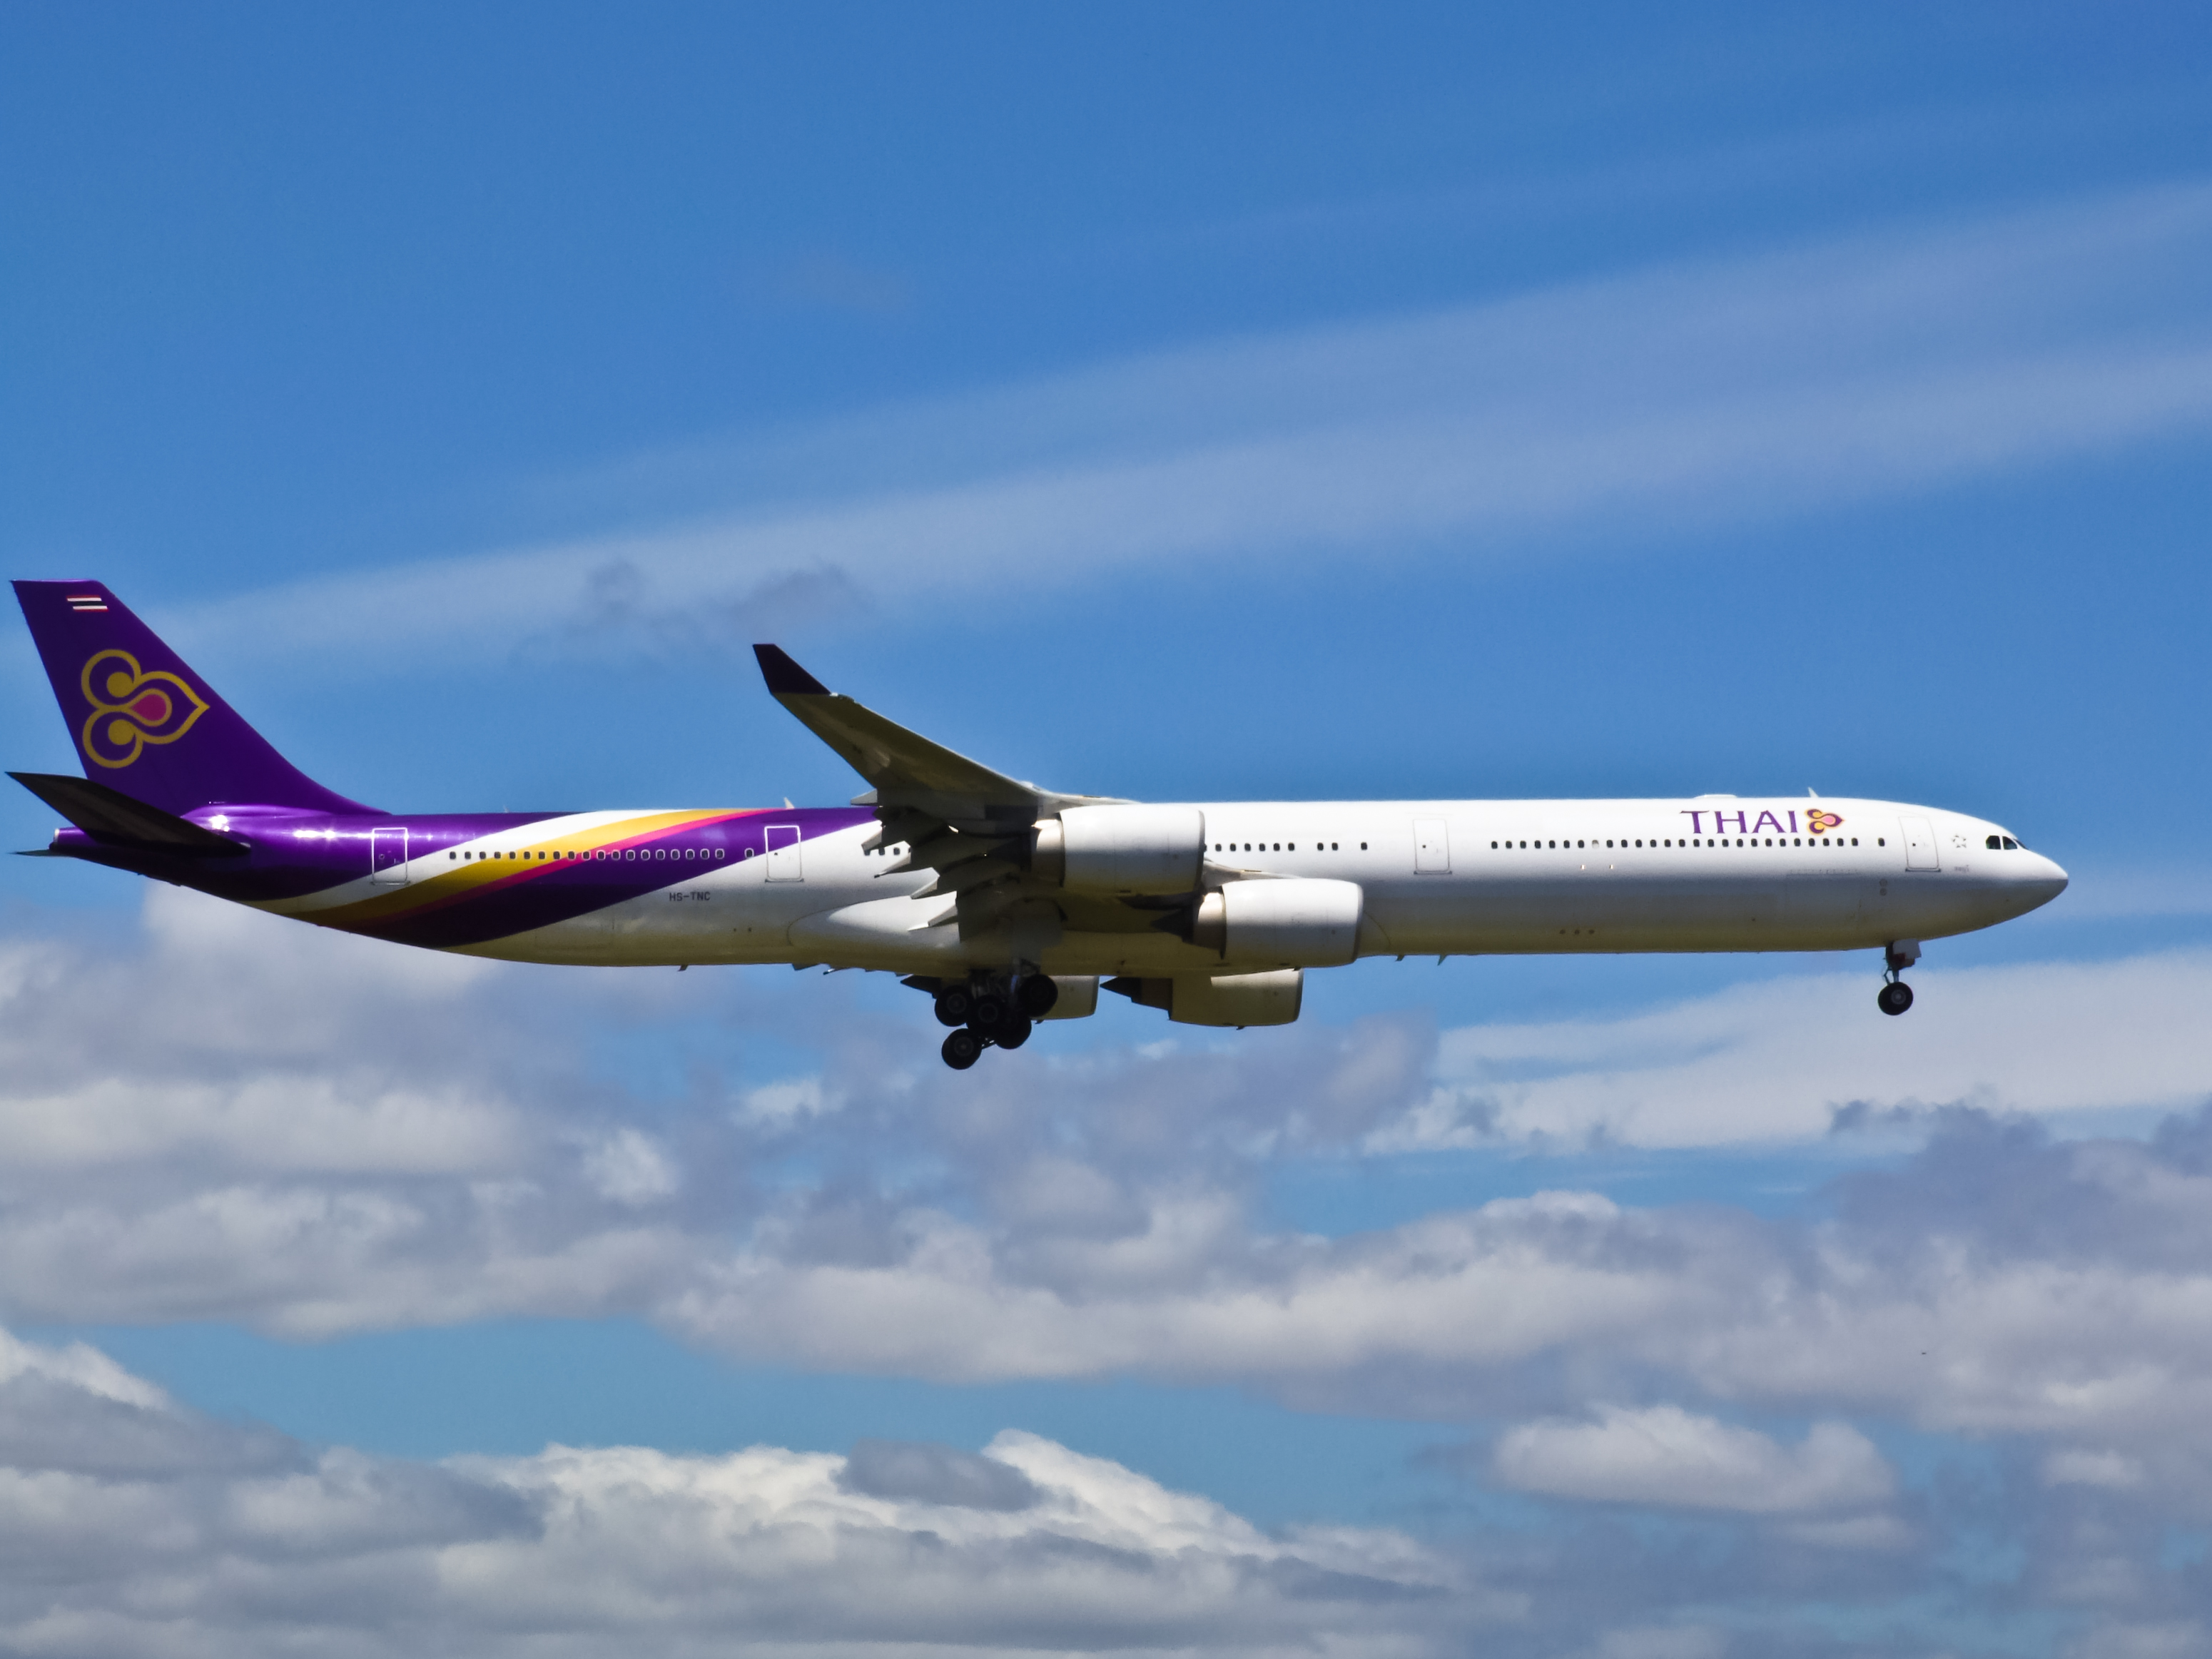 Download this Description Thai Airways Tnc picture